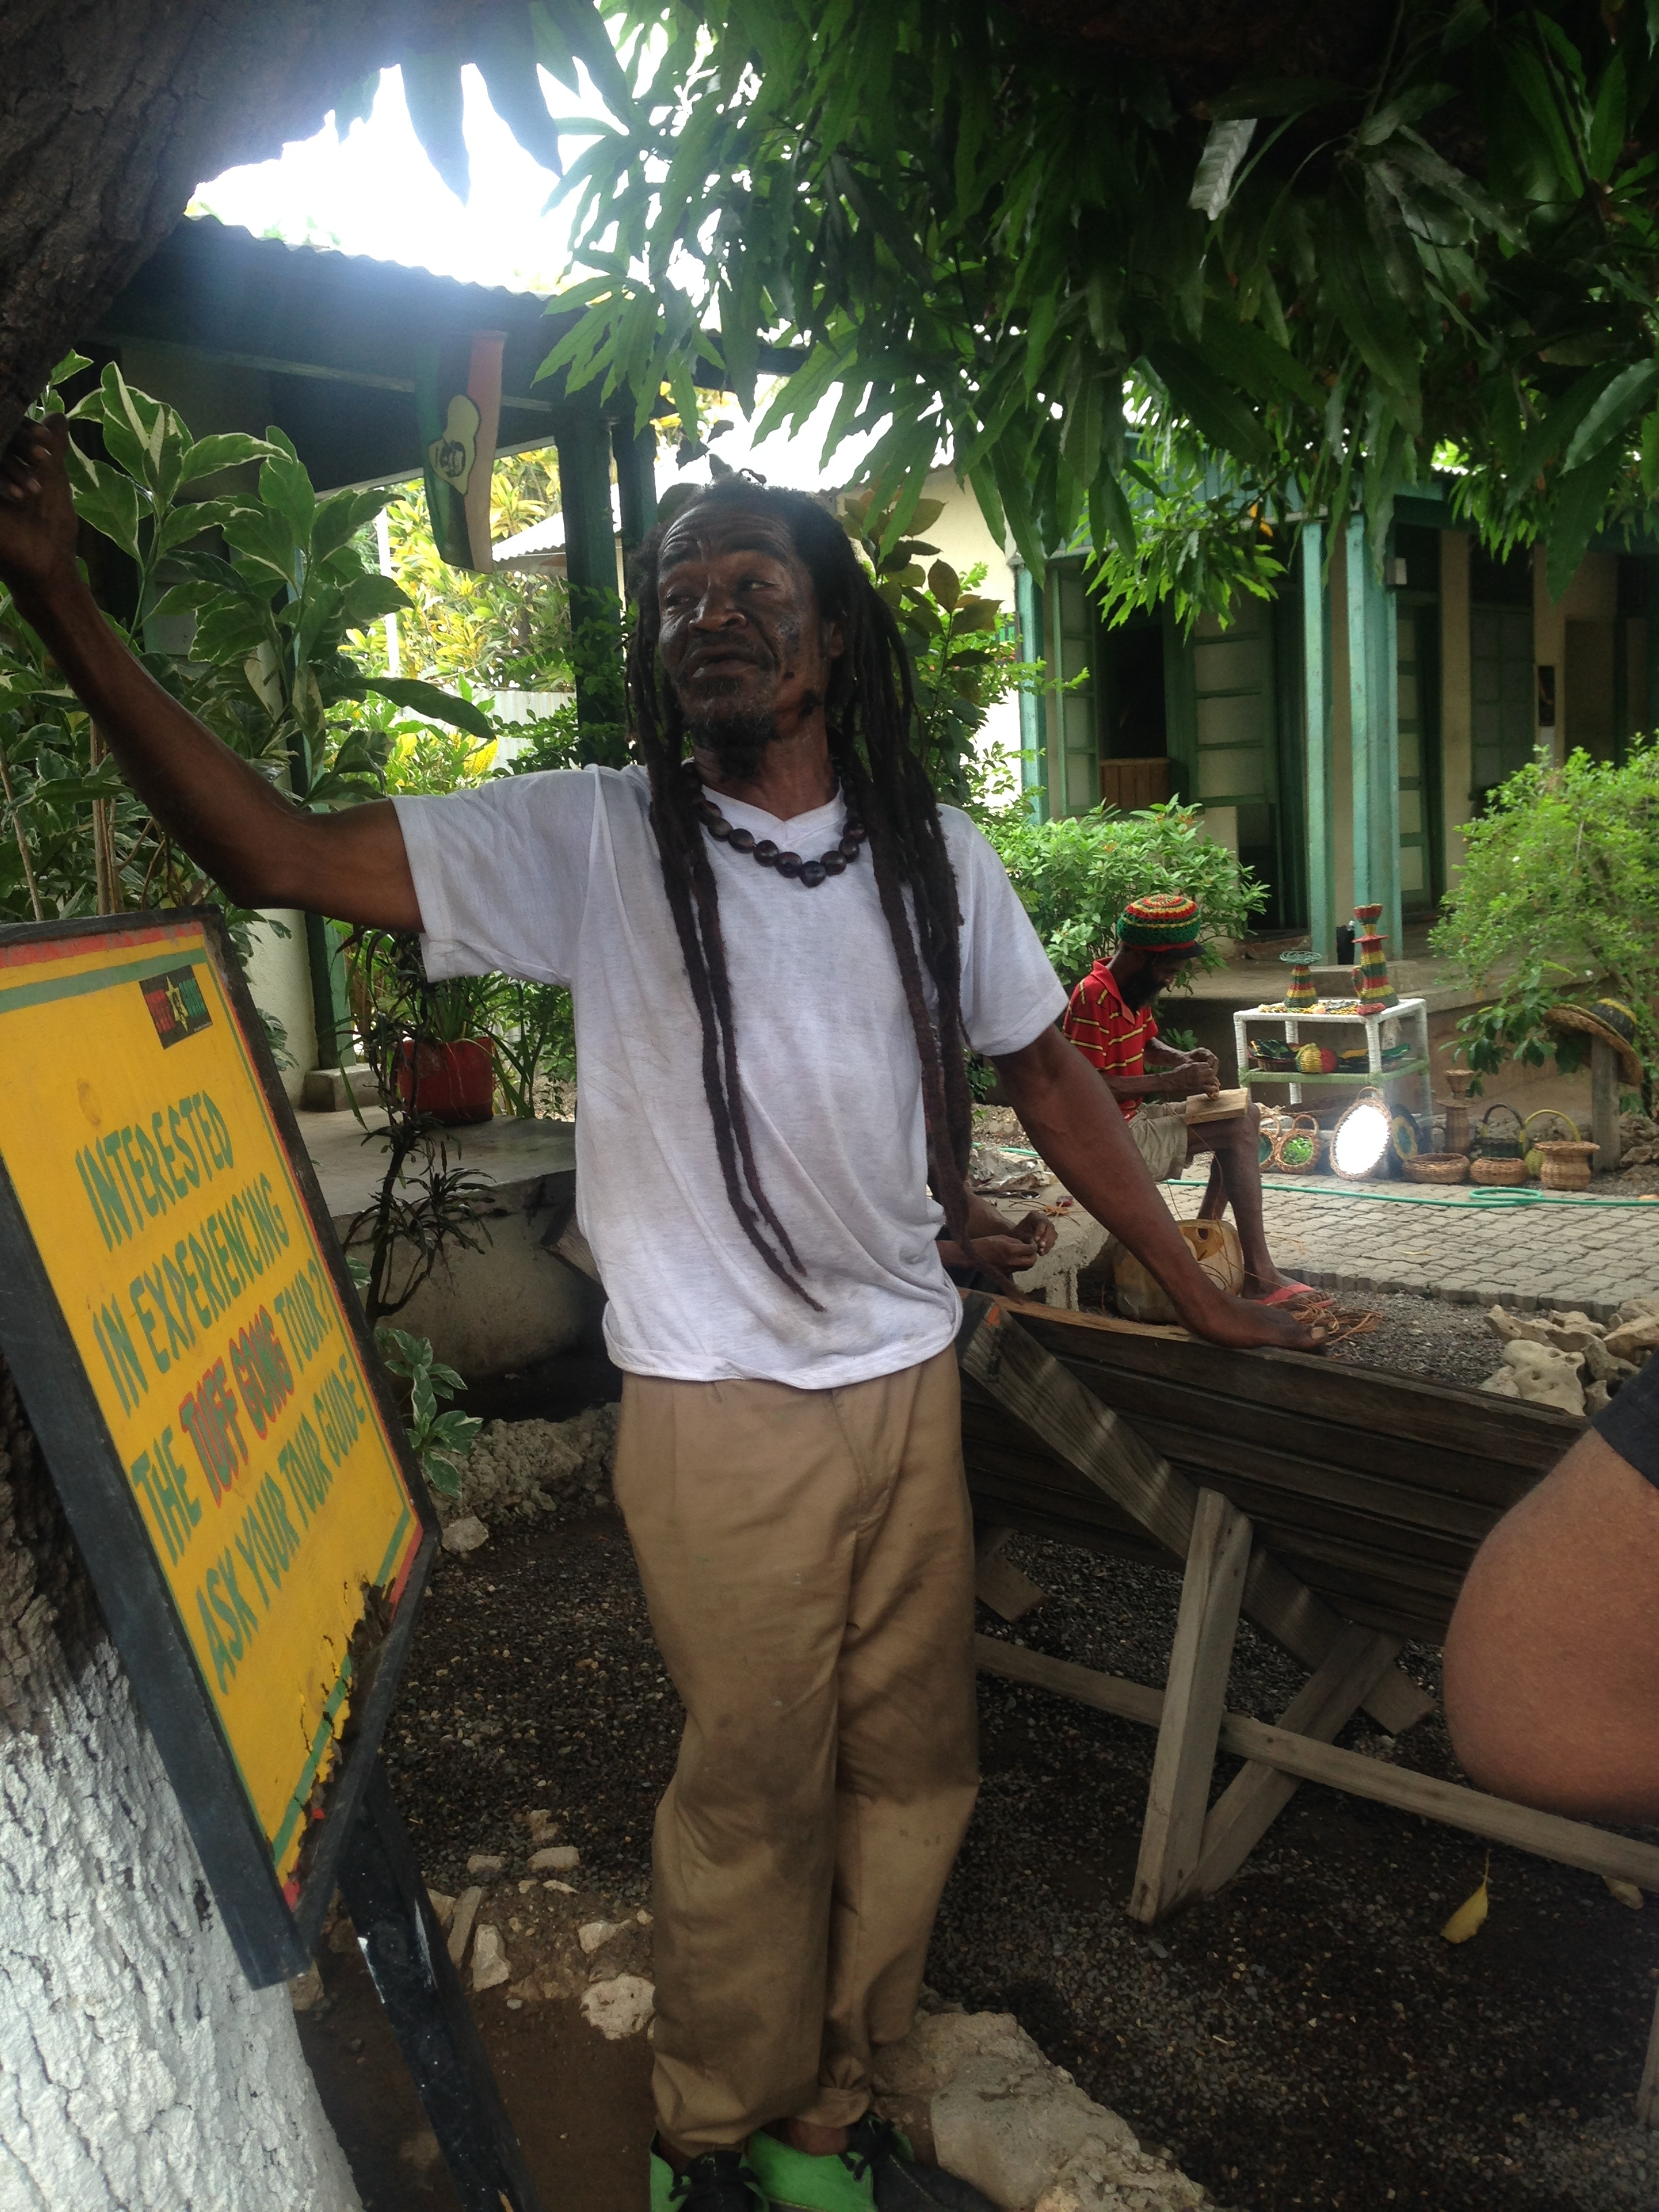 Trench town yard. Trench town, Jamaica